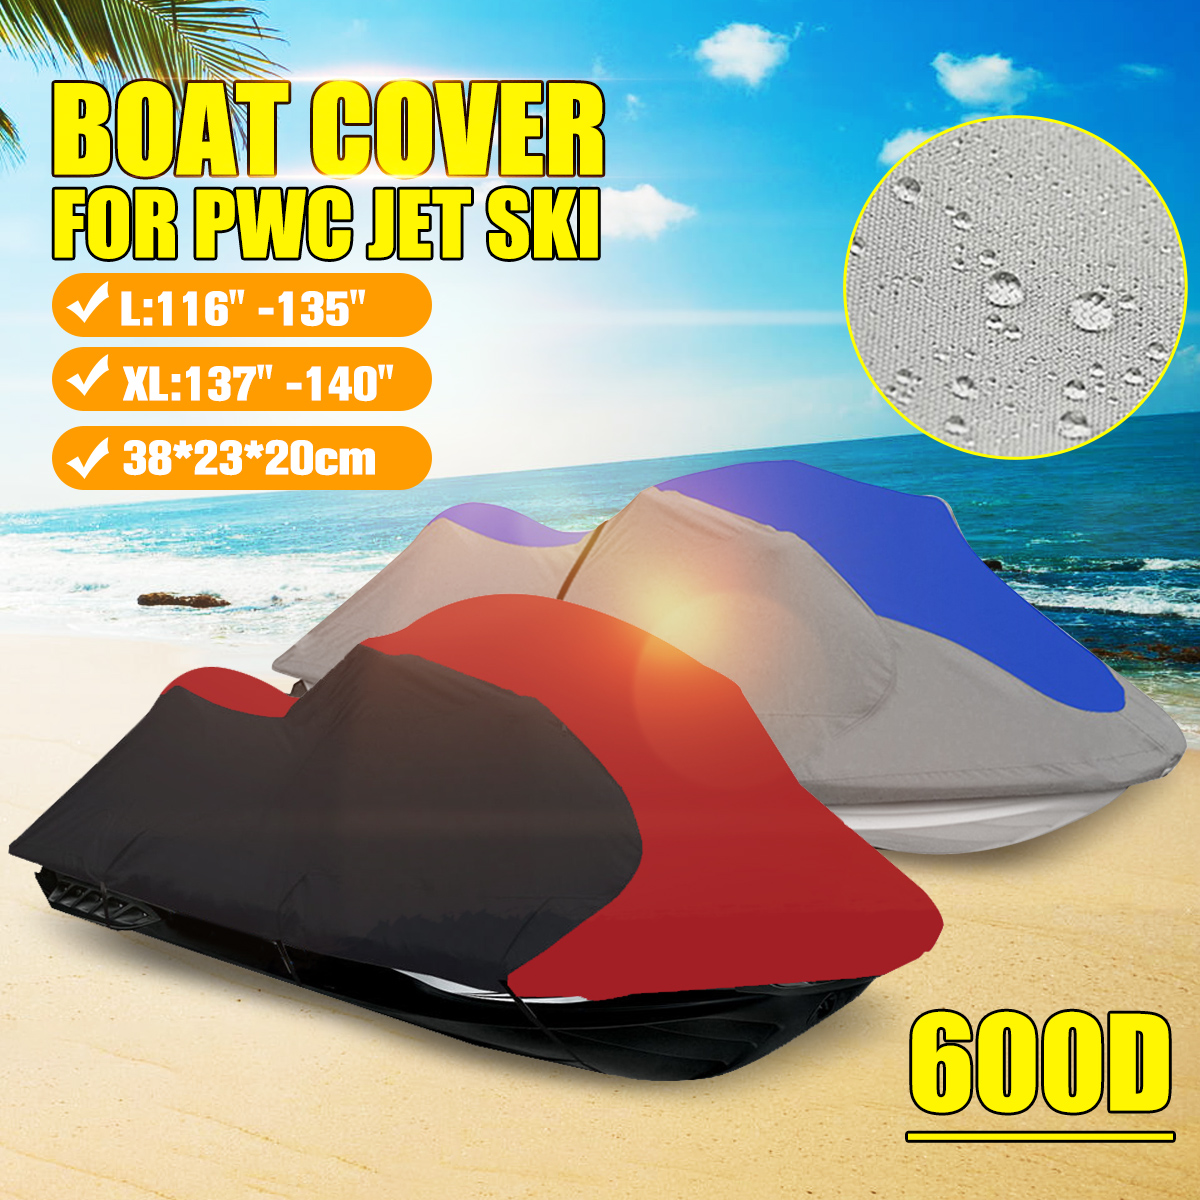 600D Polyester Universal 3 Person Solution Dyed Waterproof Boat Cover PWC Jet Ski 294-342cm and 348-356cm Length Bag image